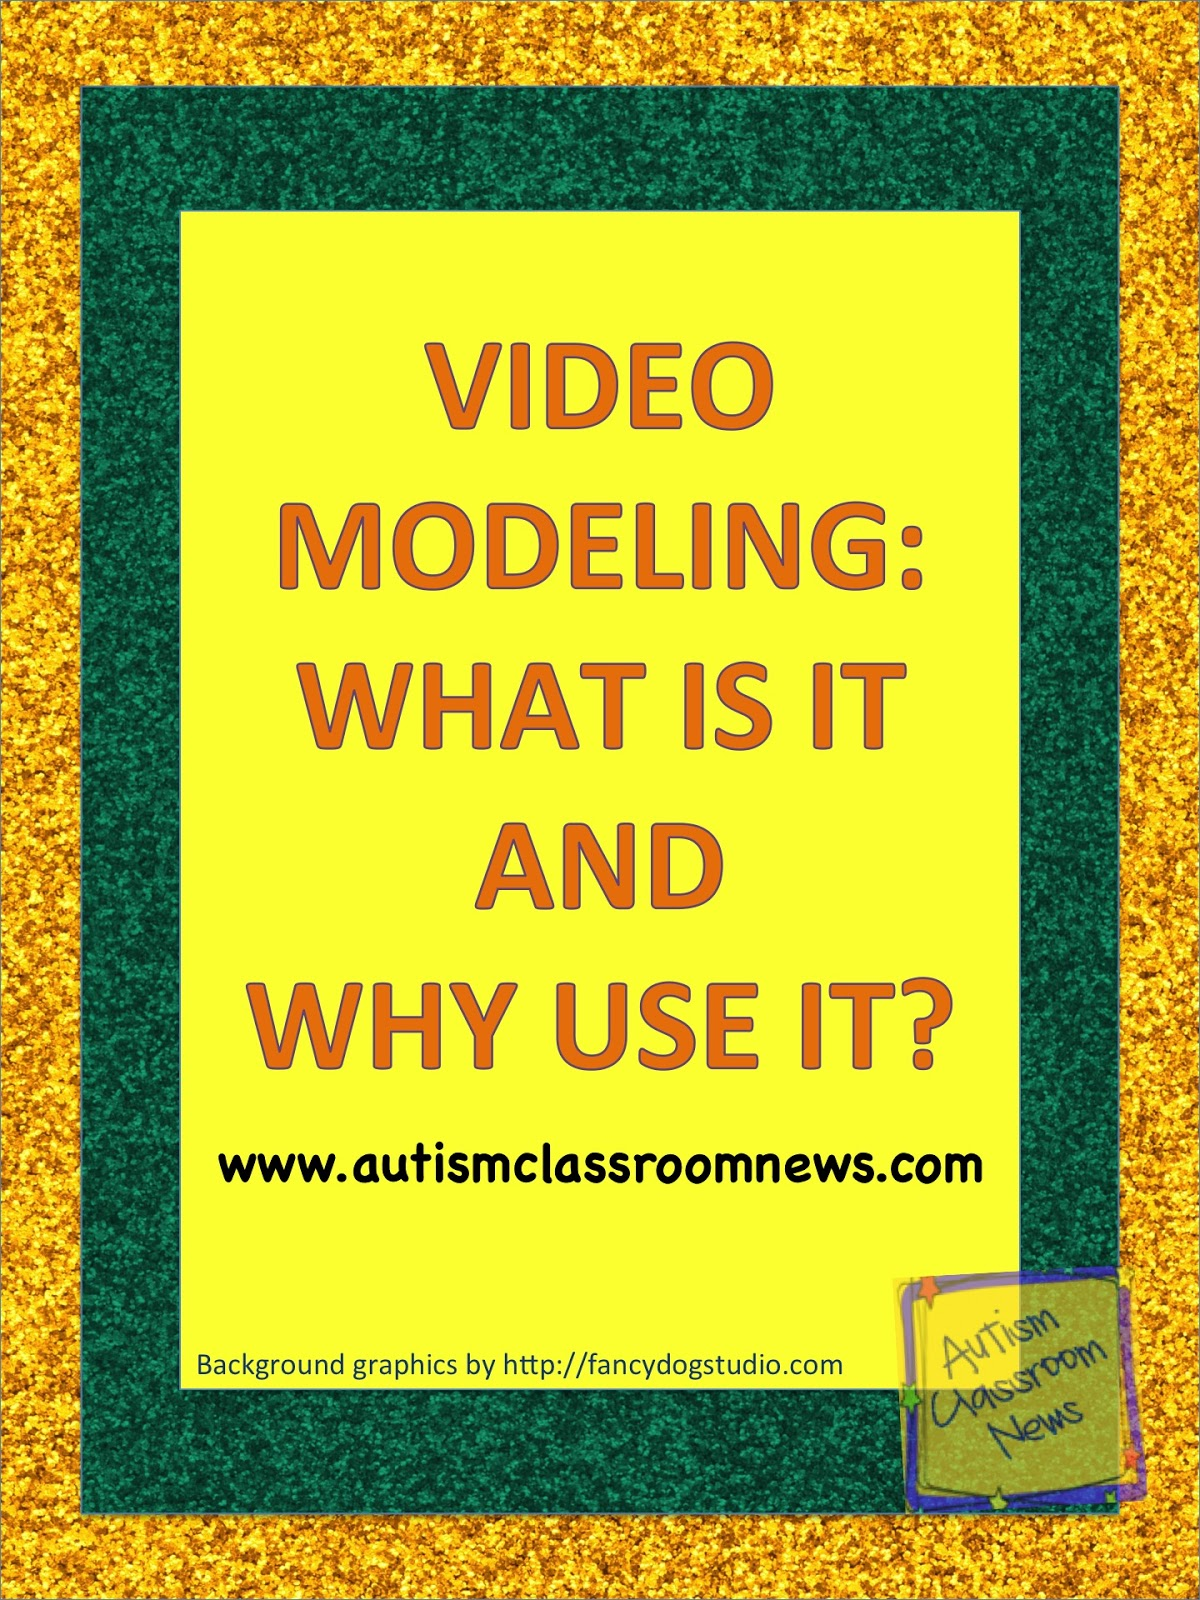 Video Modeling: What Is It and Why Use It? - Autism